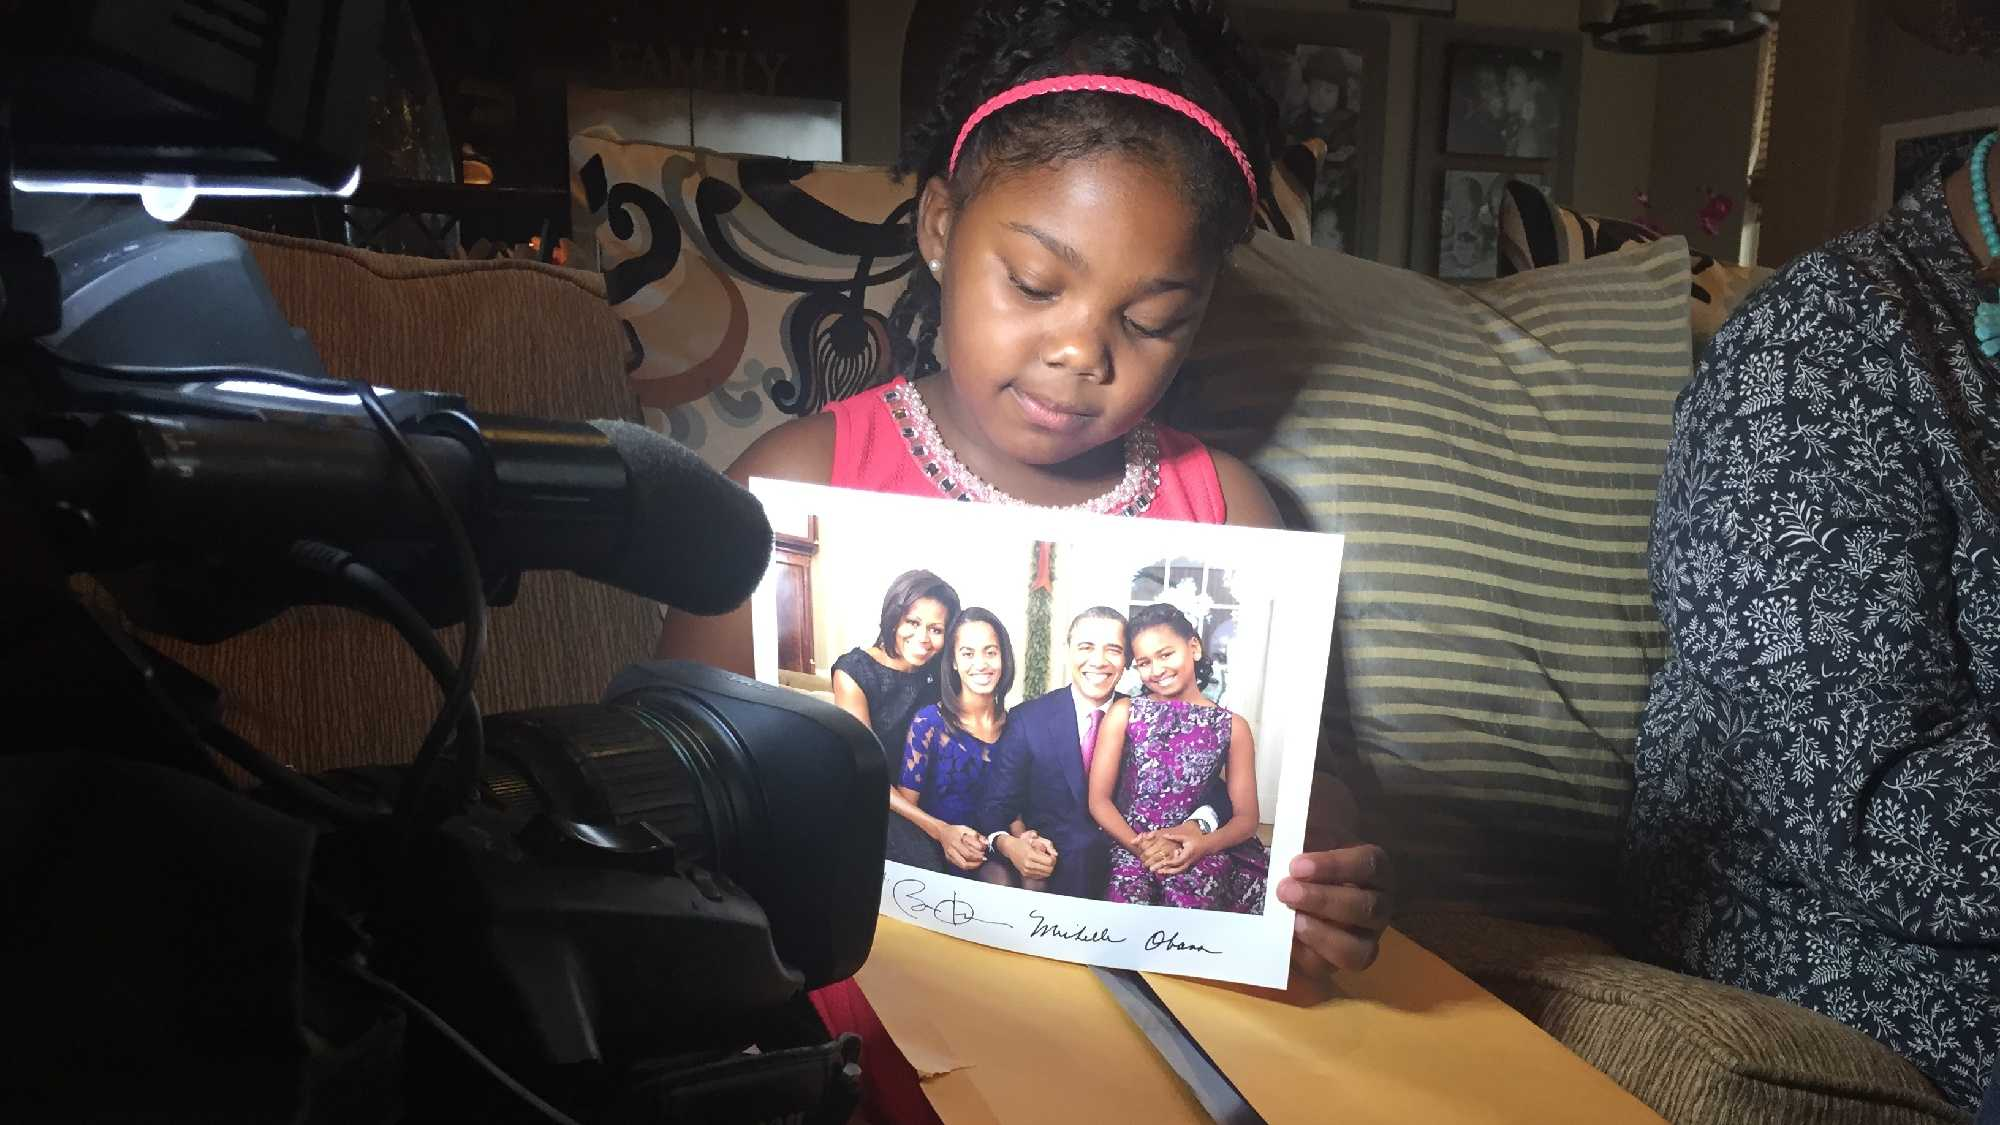 Nylah Missouri, 7, holds up an autographed photo from the First Family. She got the picture in response to a letter she wrote to President Barack Obama.